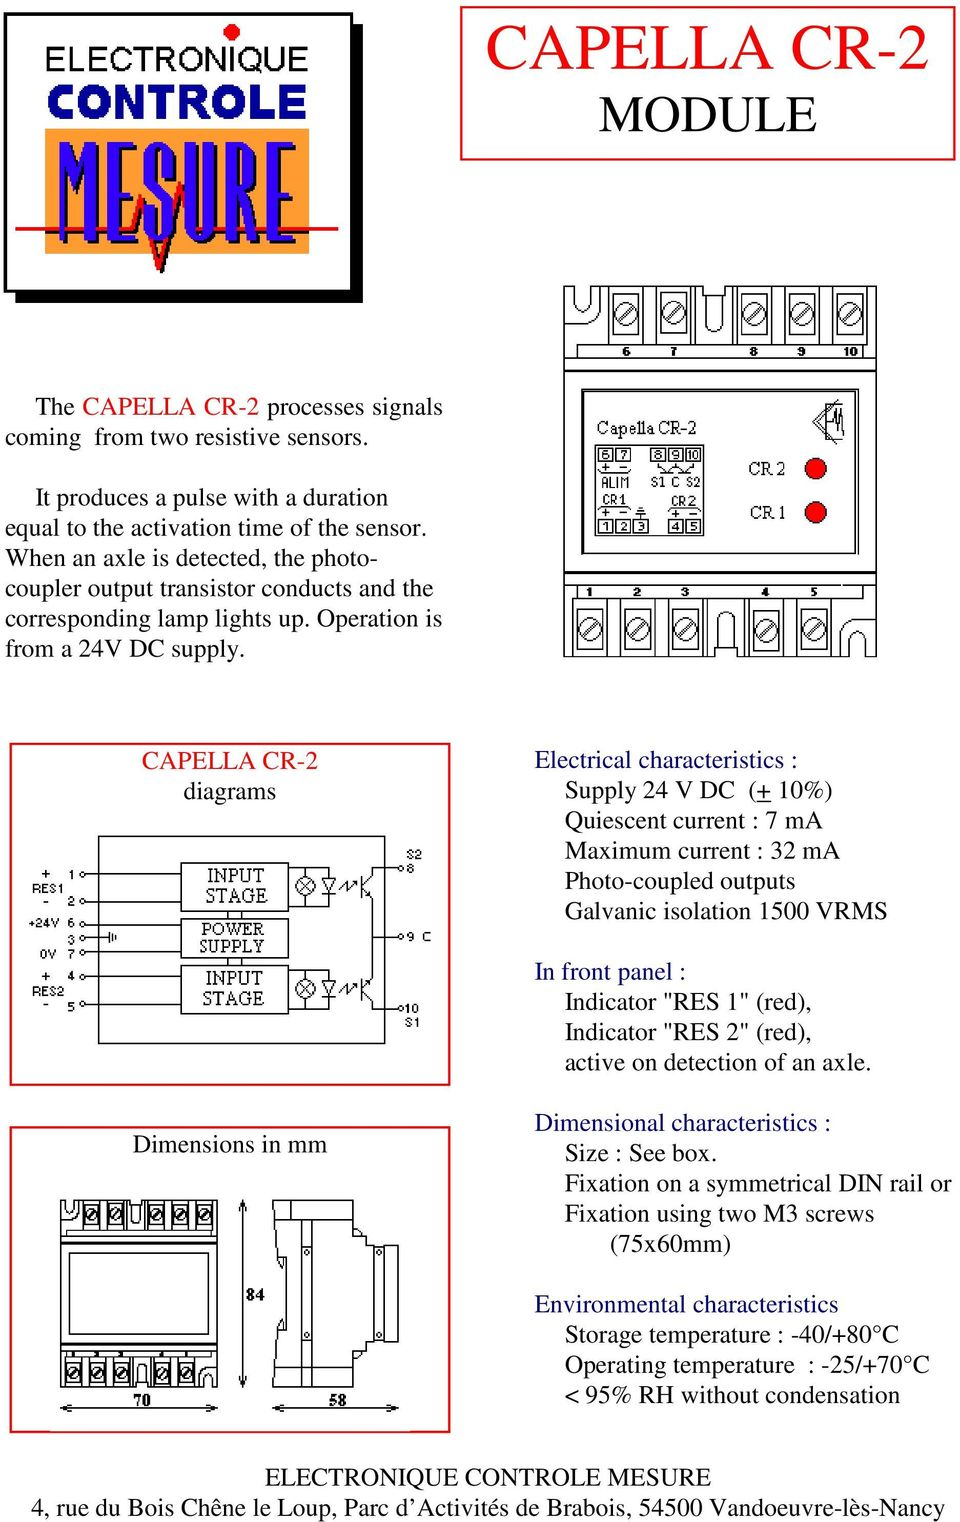 CAPELLA CR-2 diagrams Electrical characteristics : Supply 24 V DC (+ 10%) Quiescent current : 7 ma Maximum current : 32 ma Photo-coupled outputs Galvanic isolation 1500 VRMS In front panel :